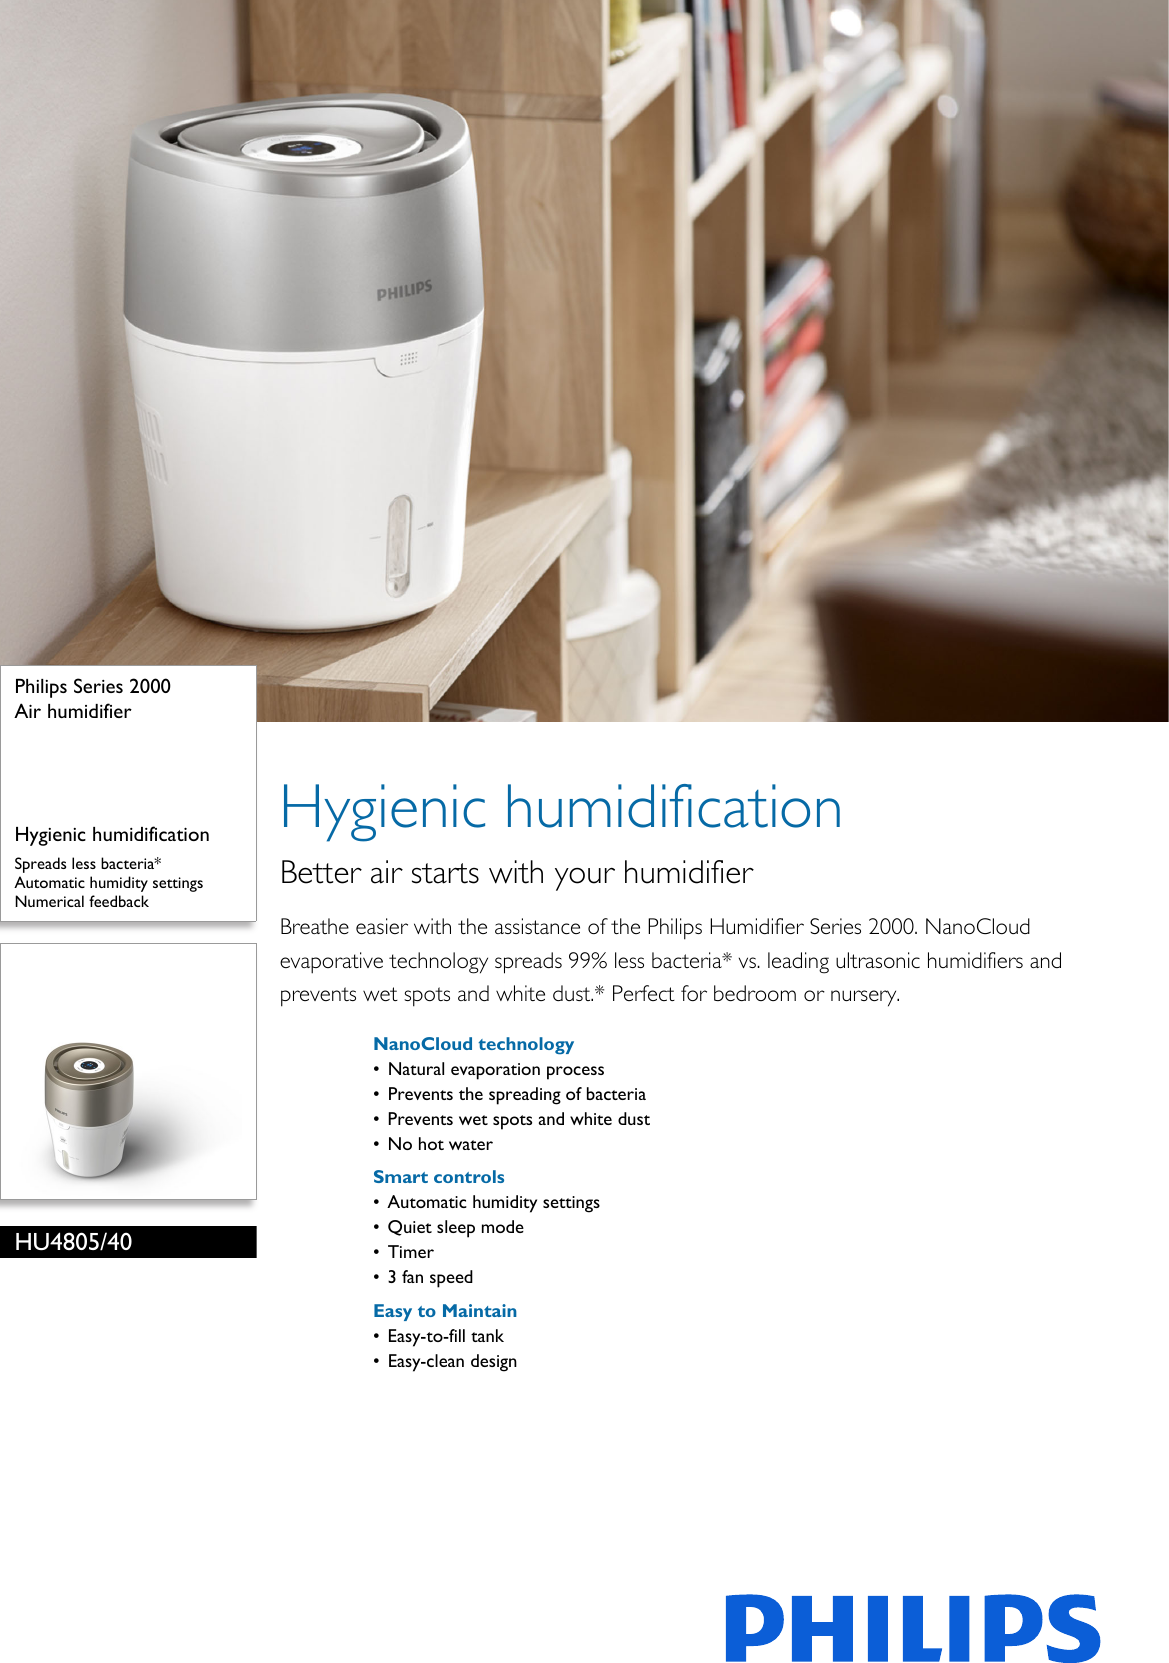 Philips Hu4805 40 Air Humidifier User Manual Leaflet Pss Aenca Automatic